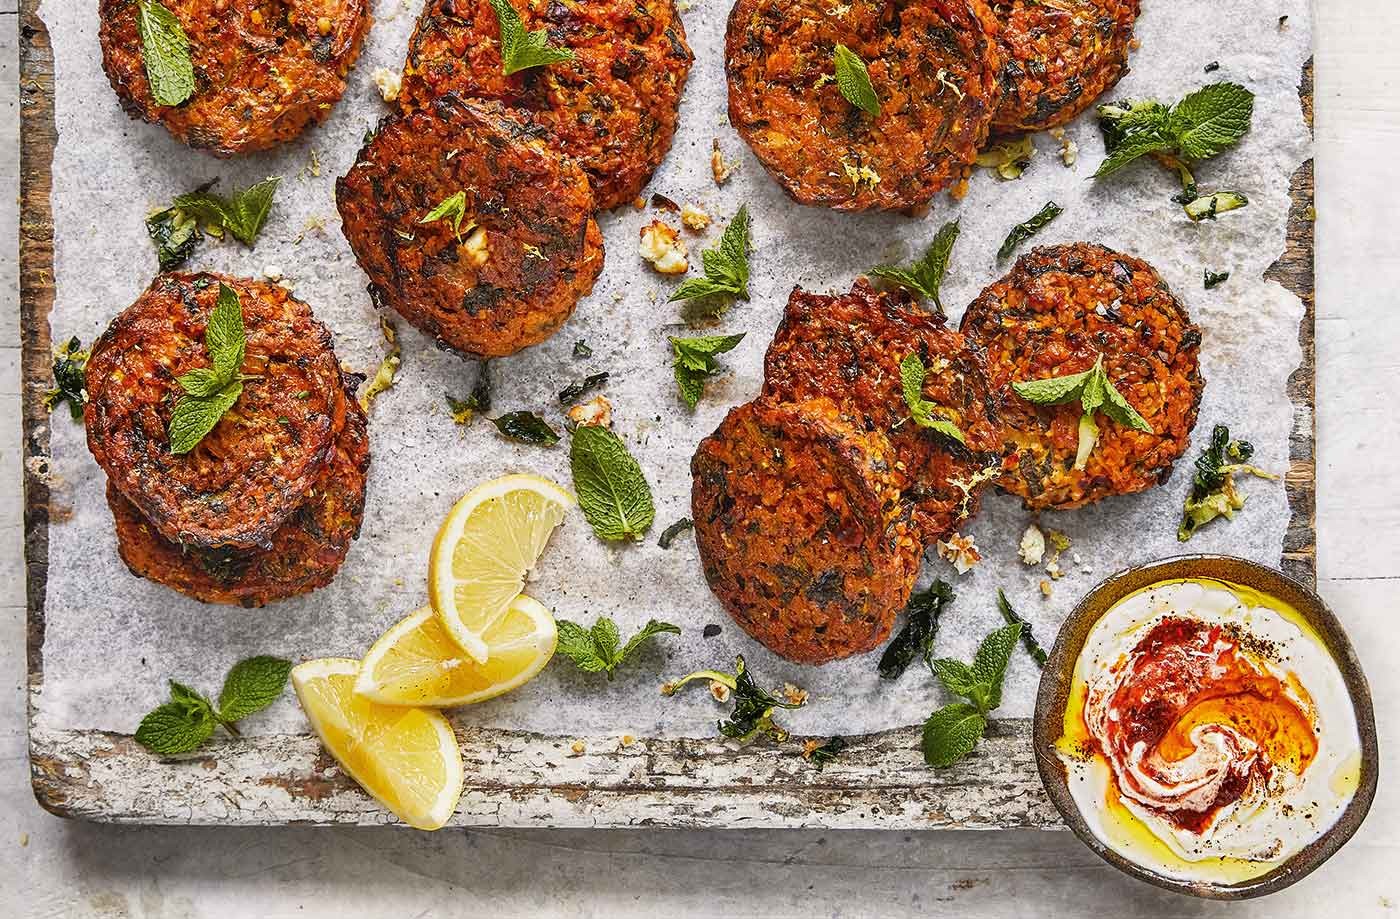 Feta, courgette and spinach cakes